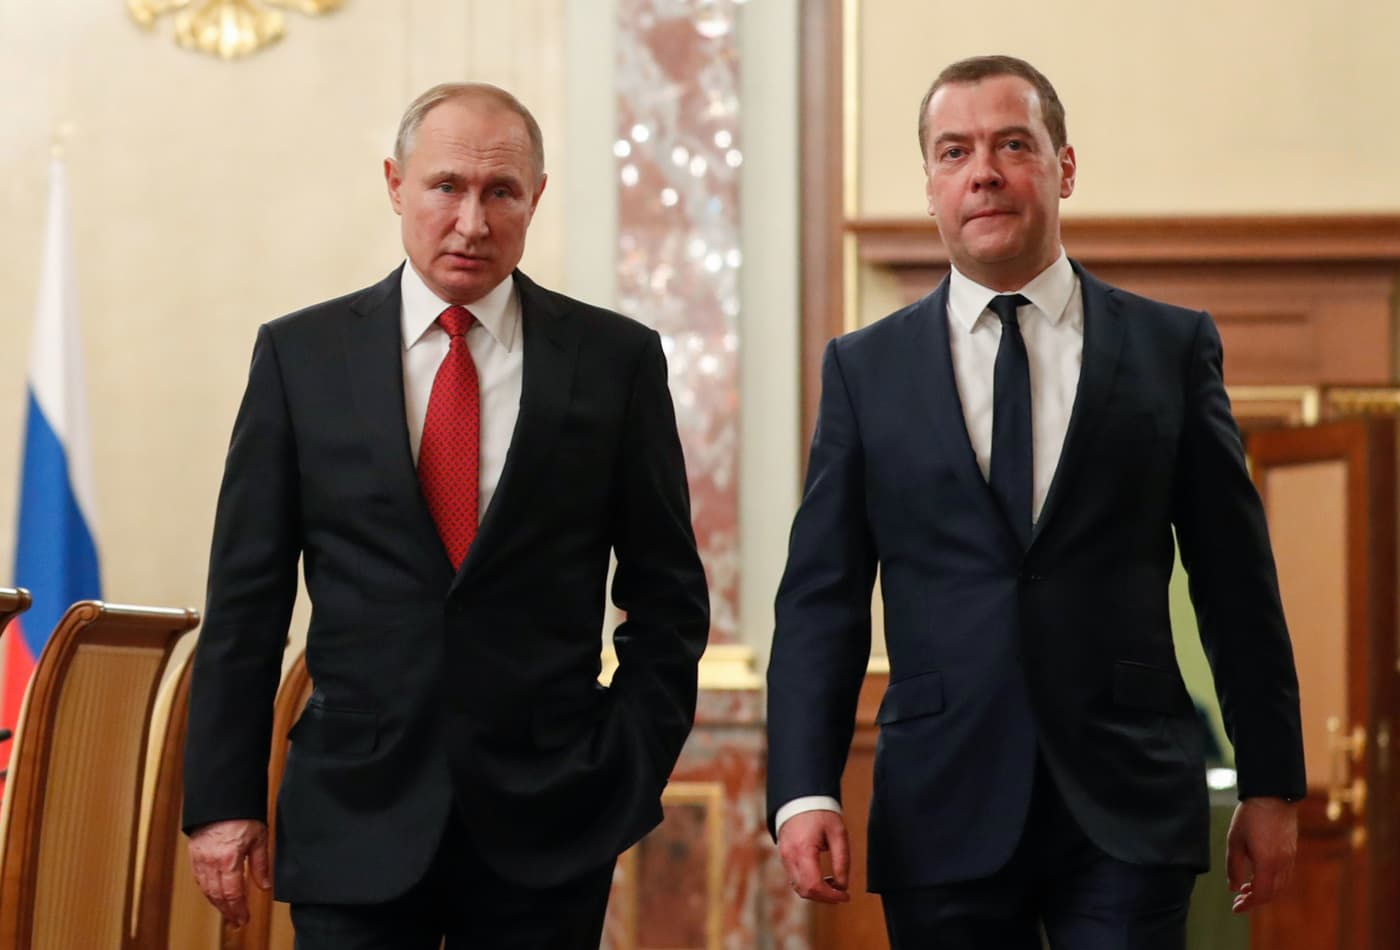 Russia's government just resigned, says a report citing the prime minister